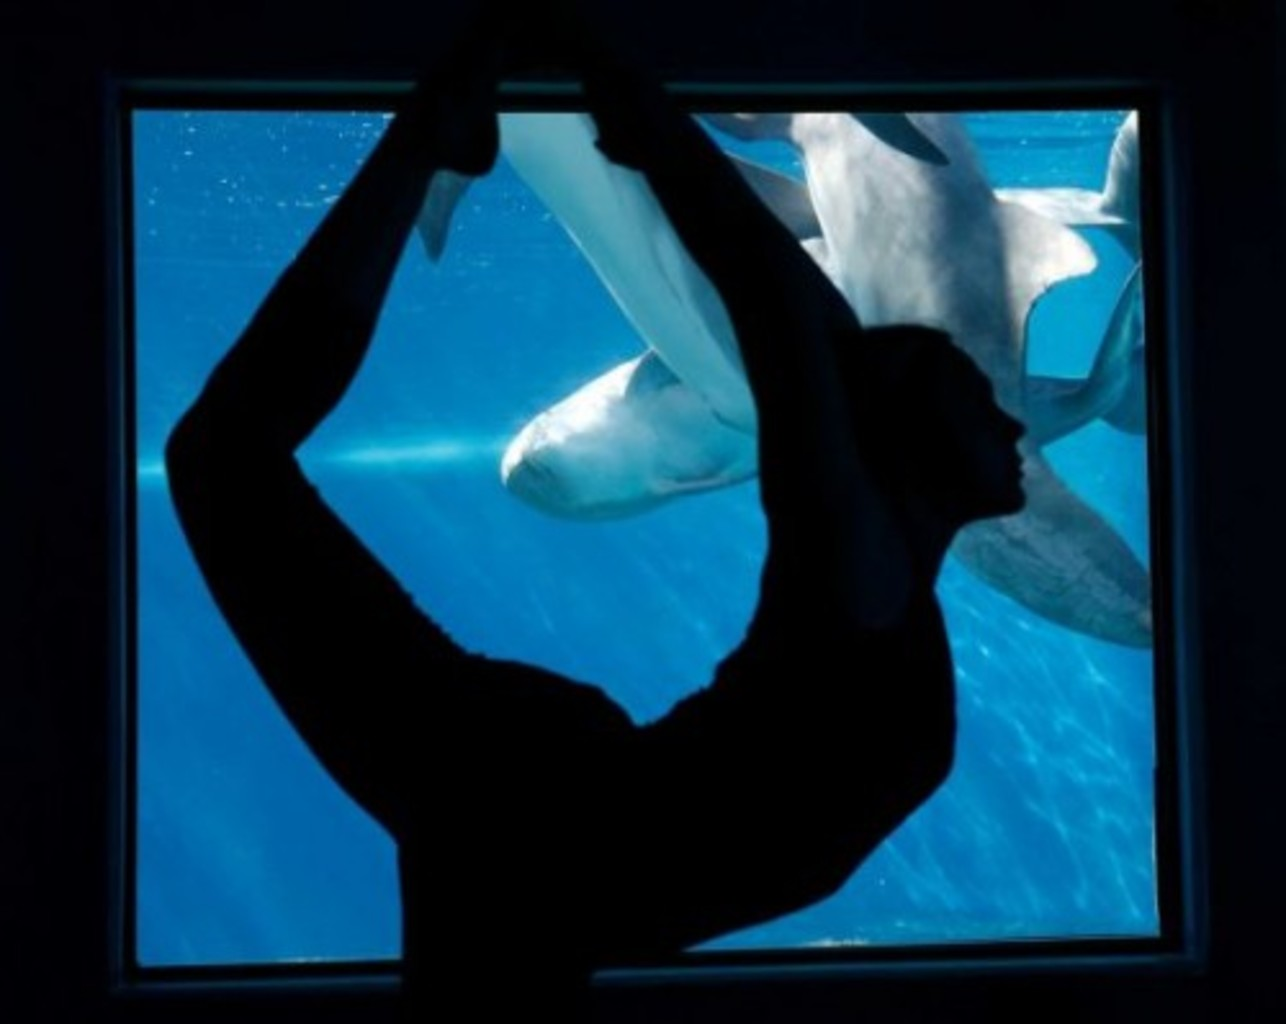 Dolphin yoga at the @Mirage is a great way to stretch out and recharge #MME16 @OracleMktgCloud